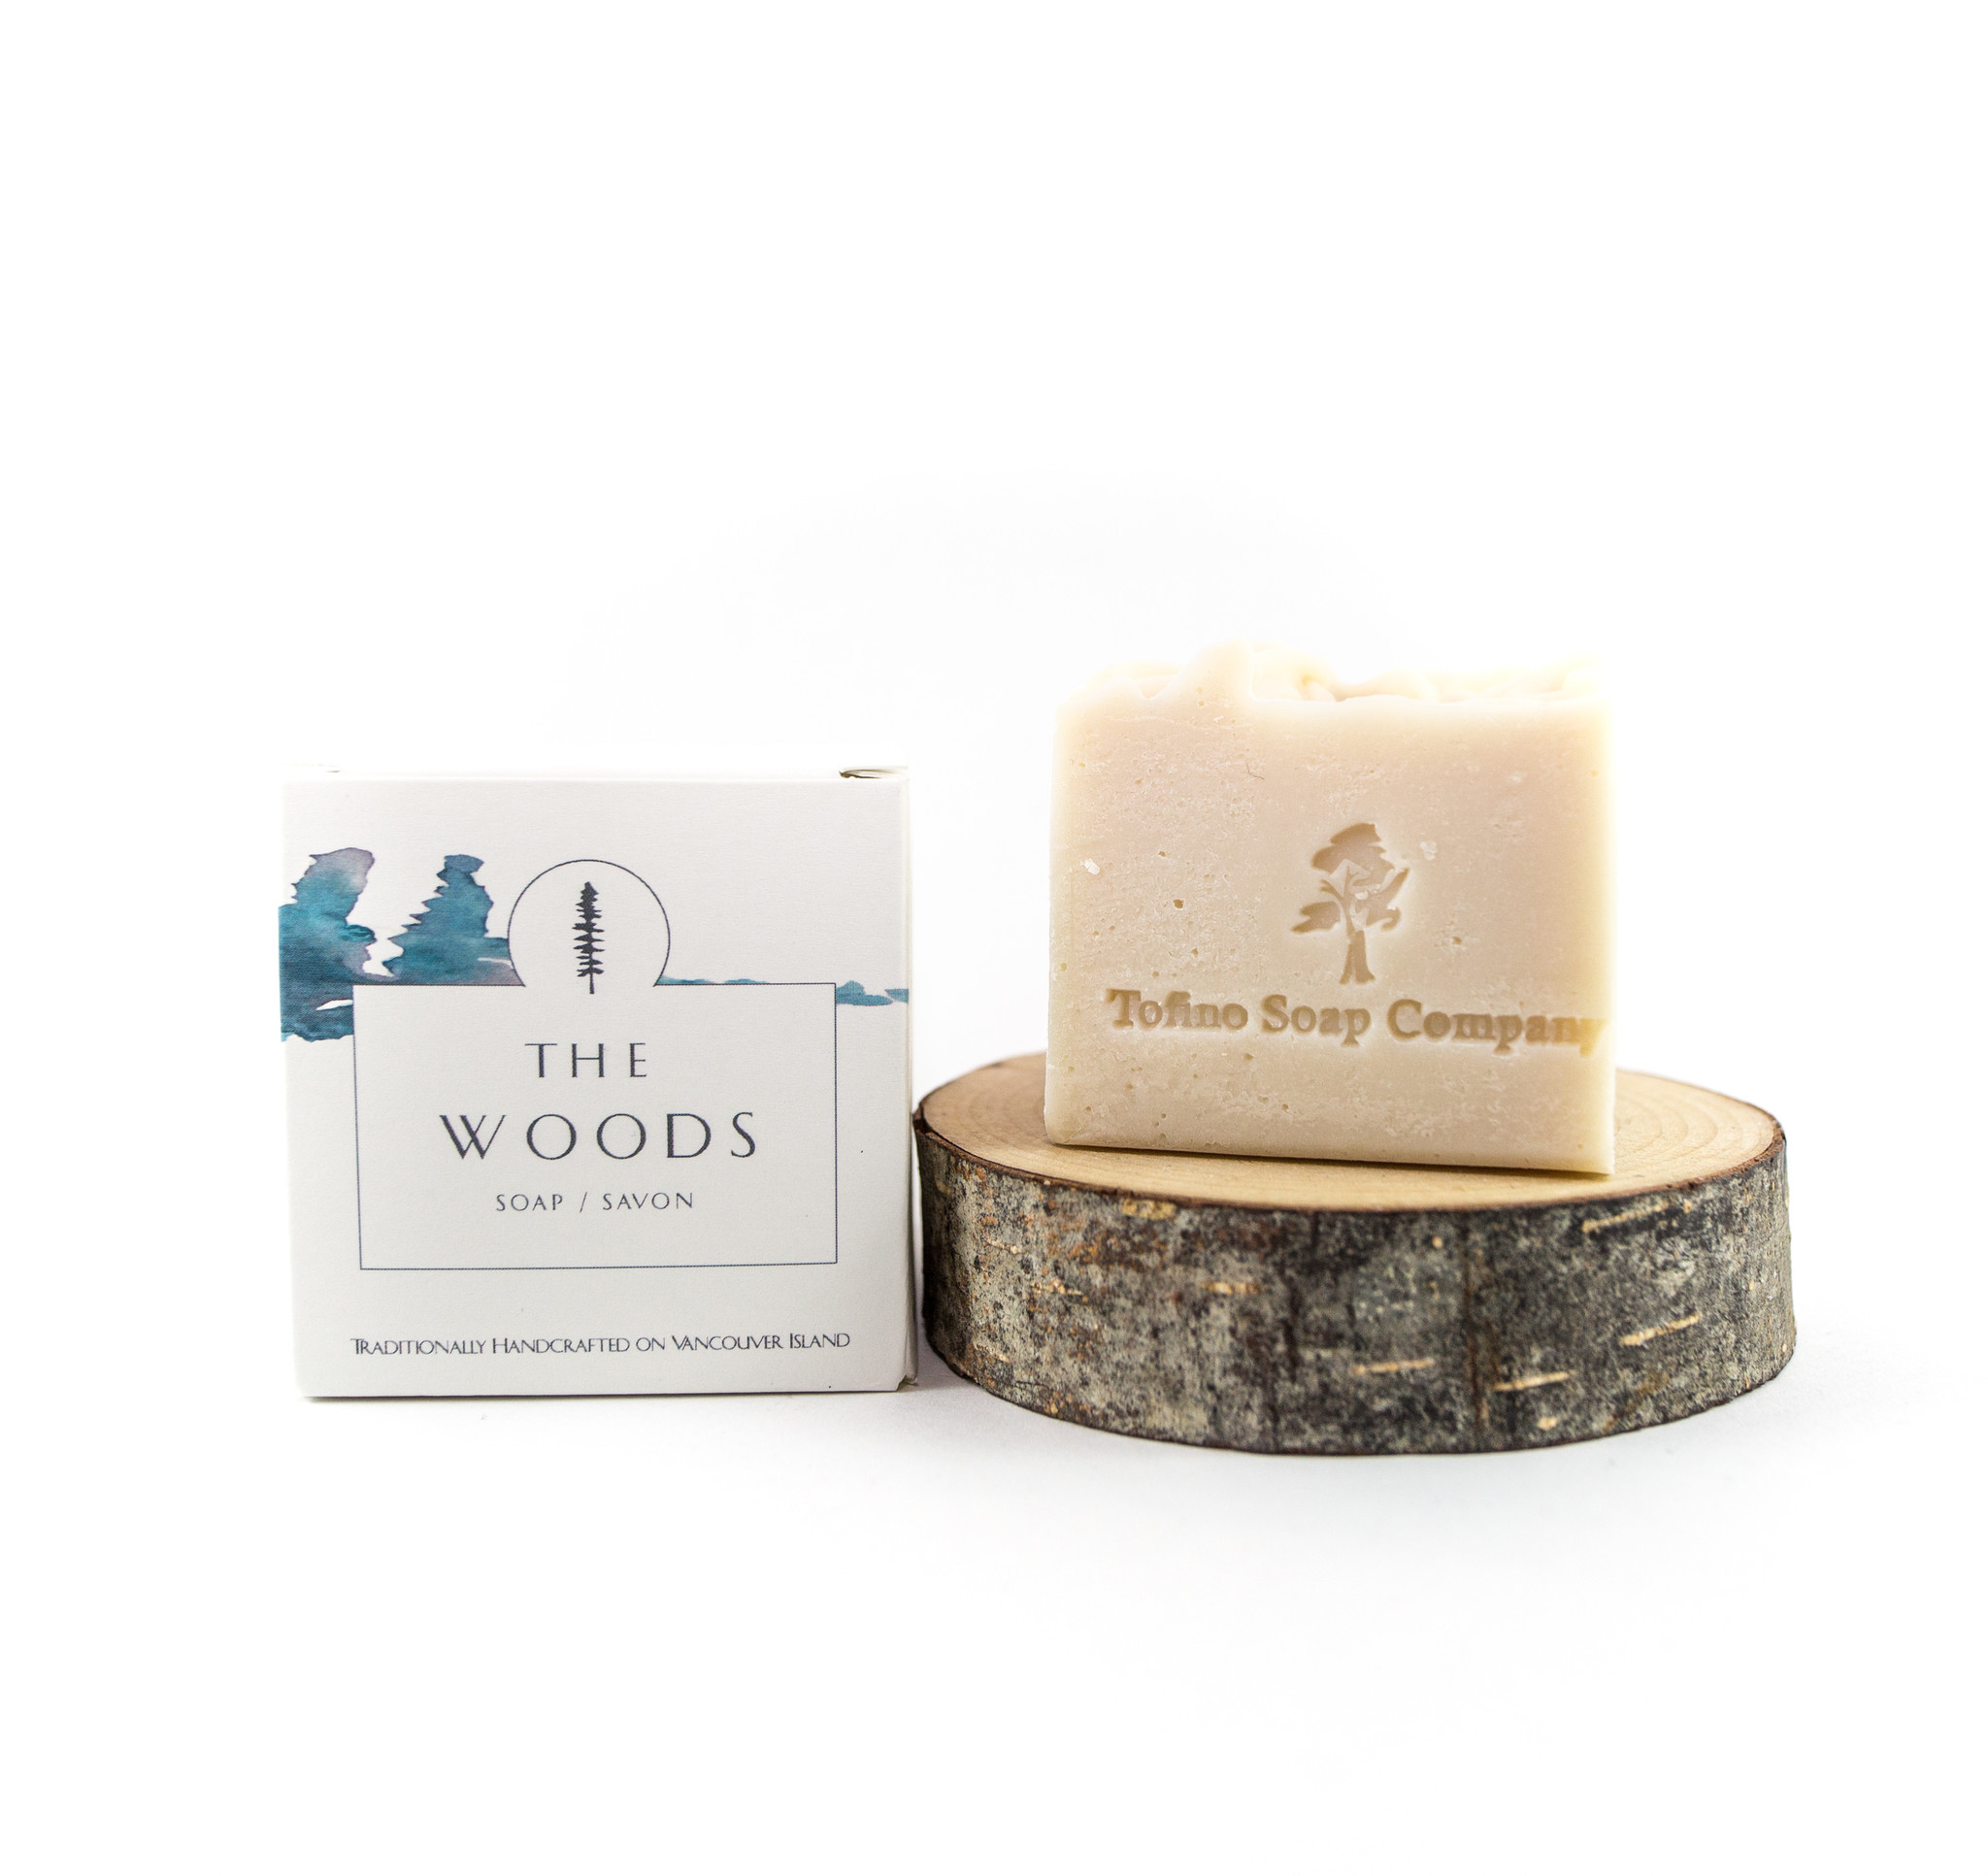 The Woods Soap